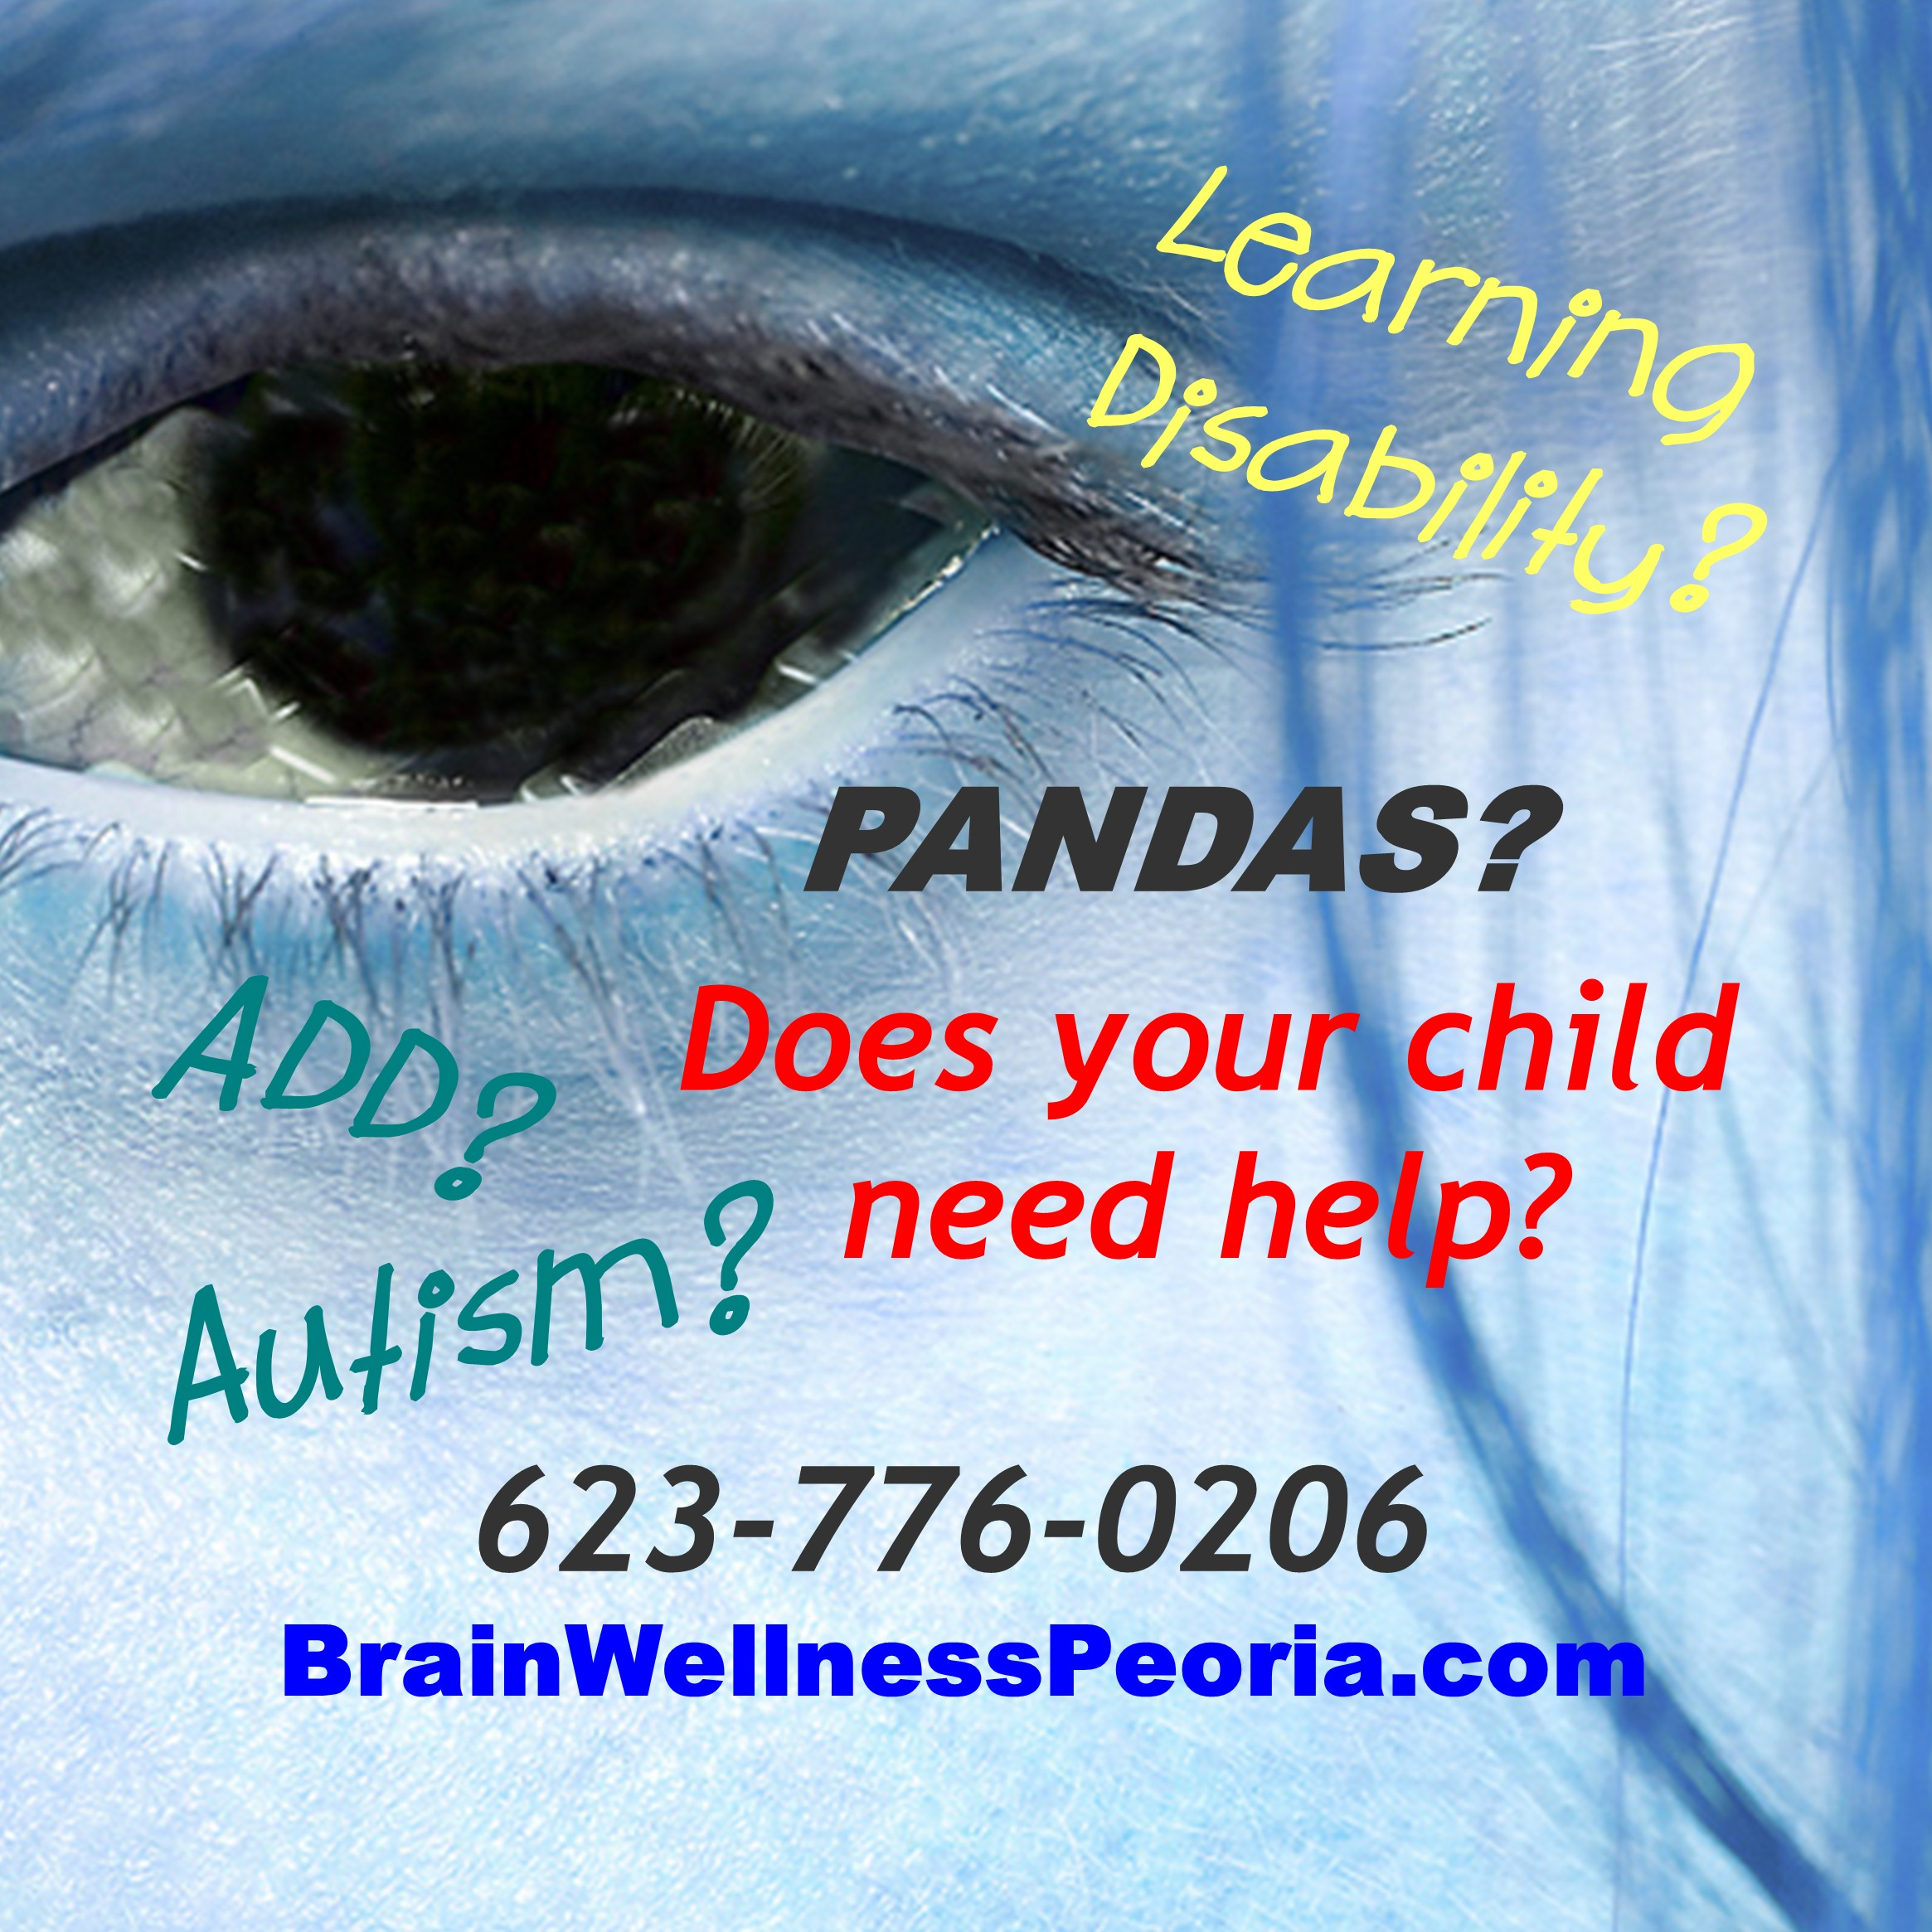 PANDAS Strep Throat Child Need Help Autism Aspergers Syndrome